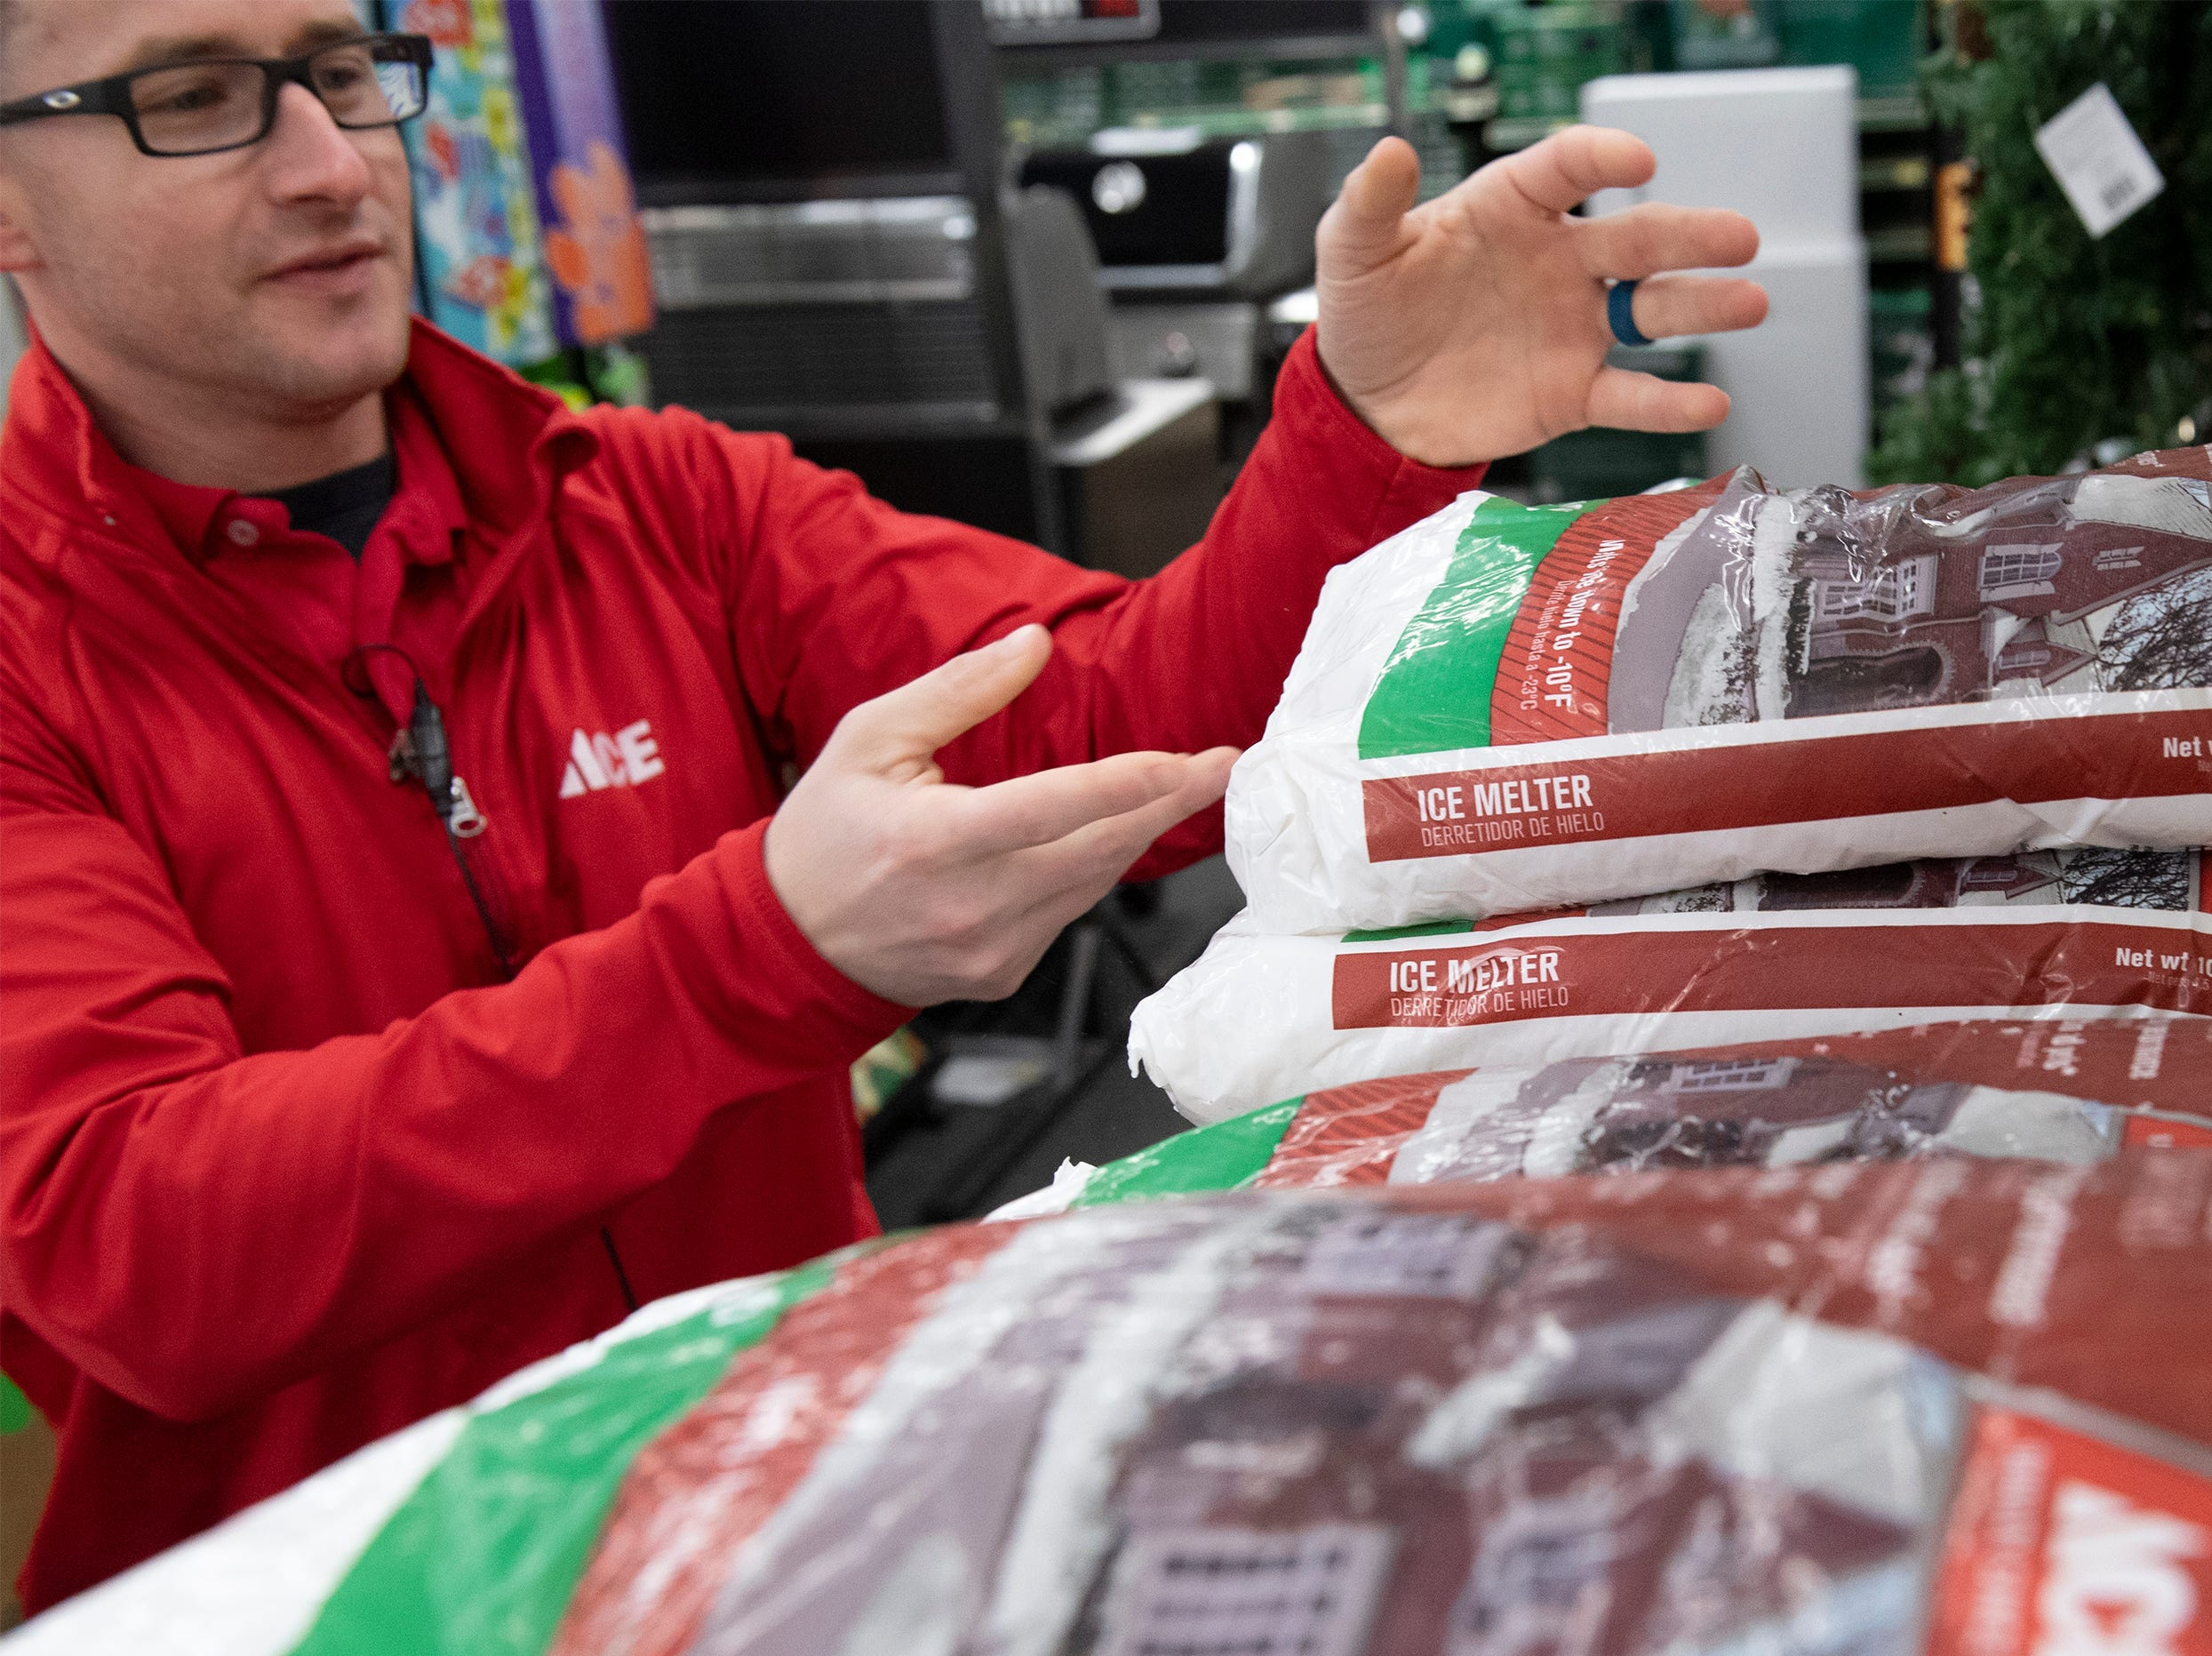 Store Manager Jeff Knight shelves small bags of ice melt which arrived with a delivery at Classic Ace Hardware in Greenville Friday, Dec. 07, 2018. According to Knight, they increased their order of snow related supplies for this weekend.